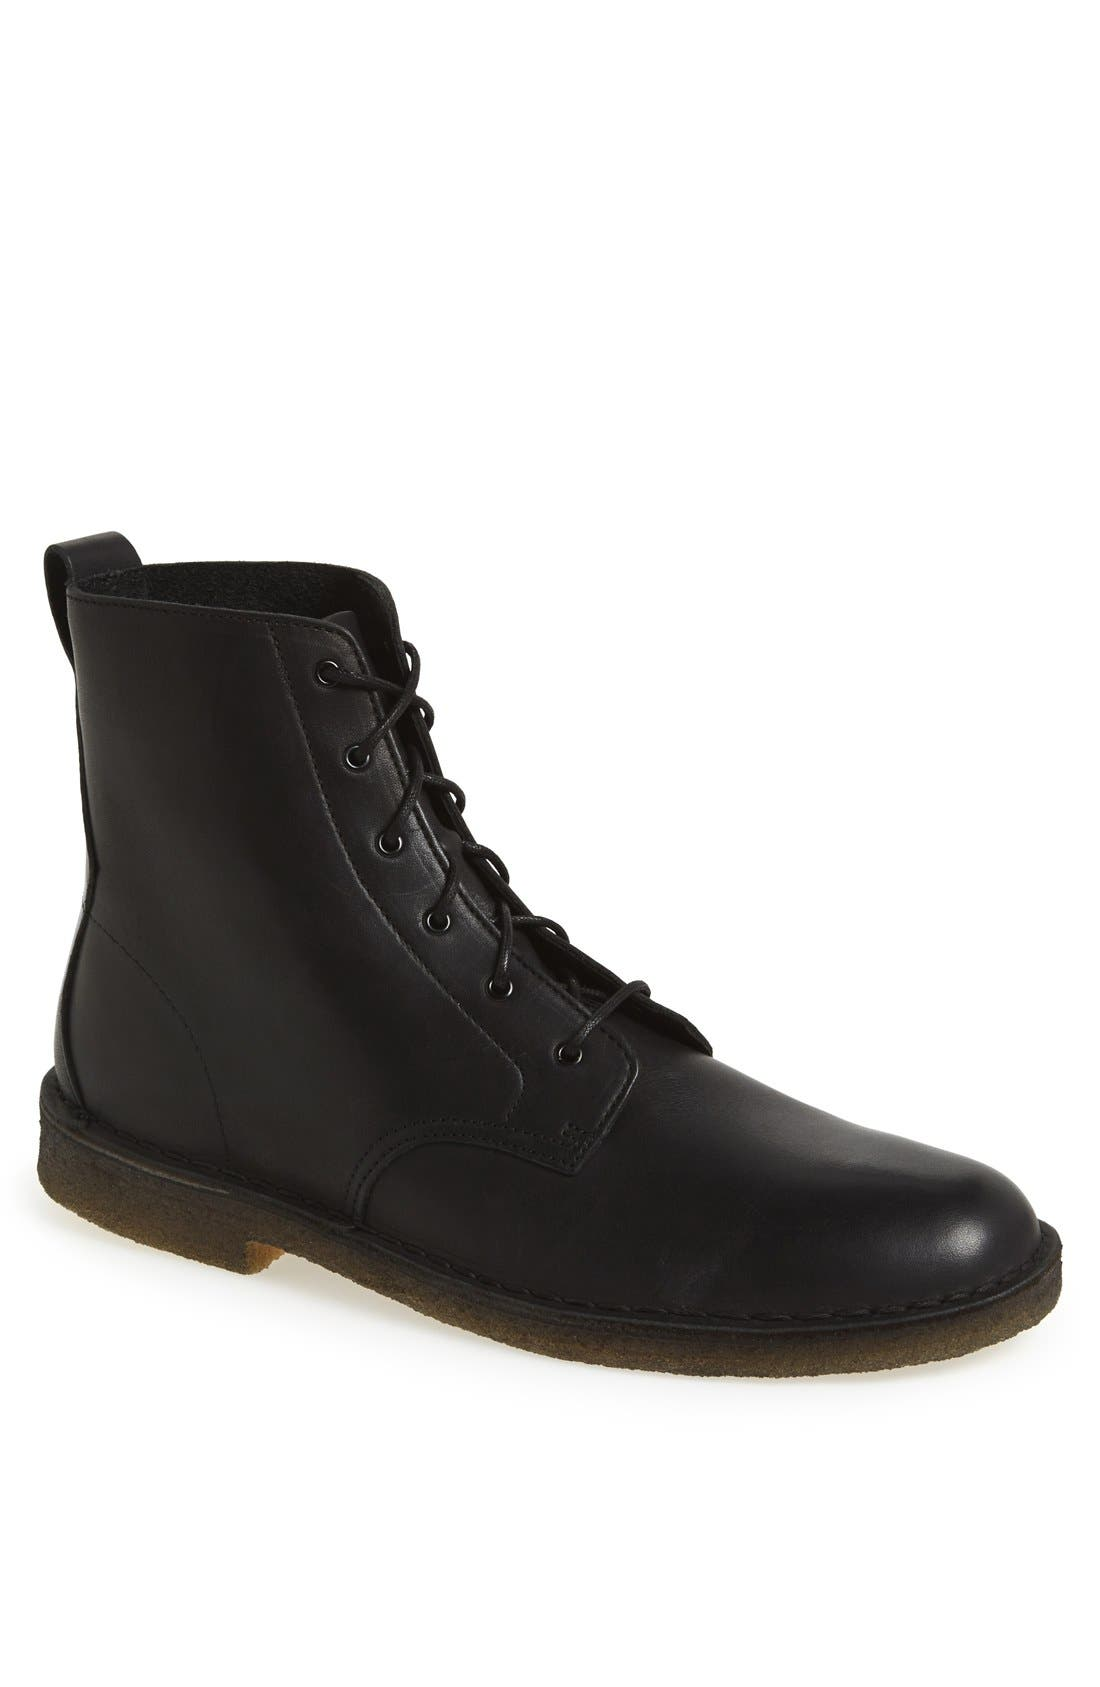 Main Image - Clarks 'Desert Mali' Plain Boot (Men)